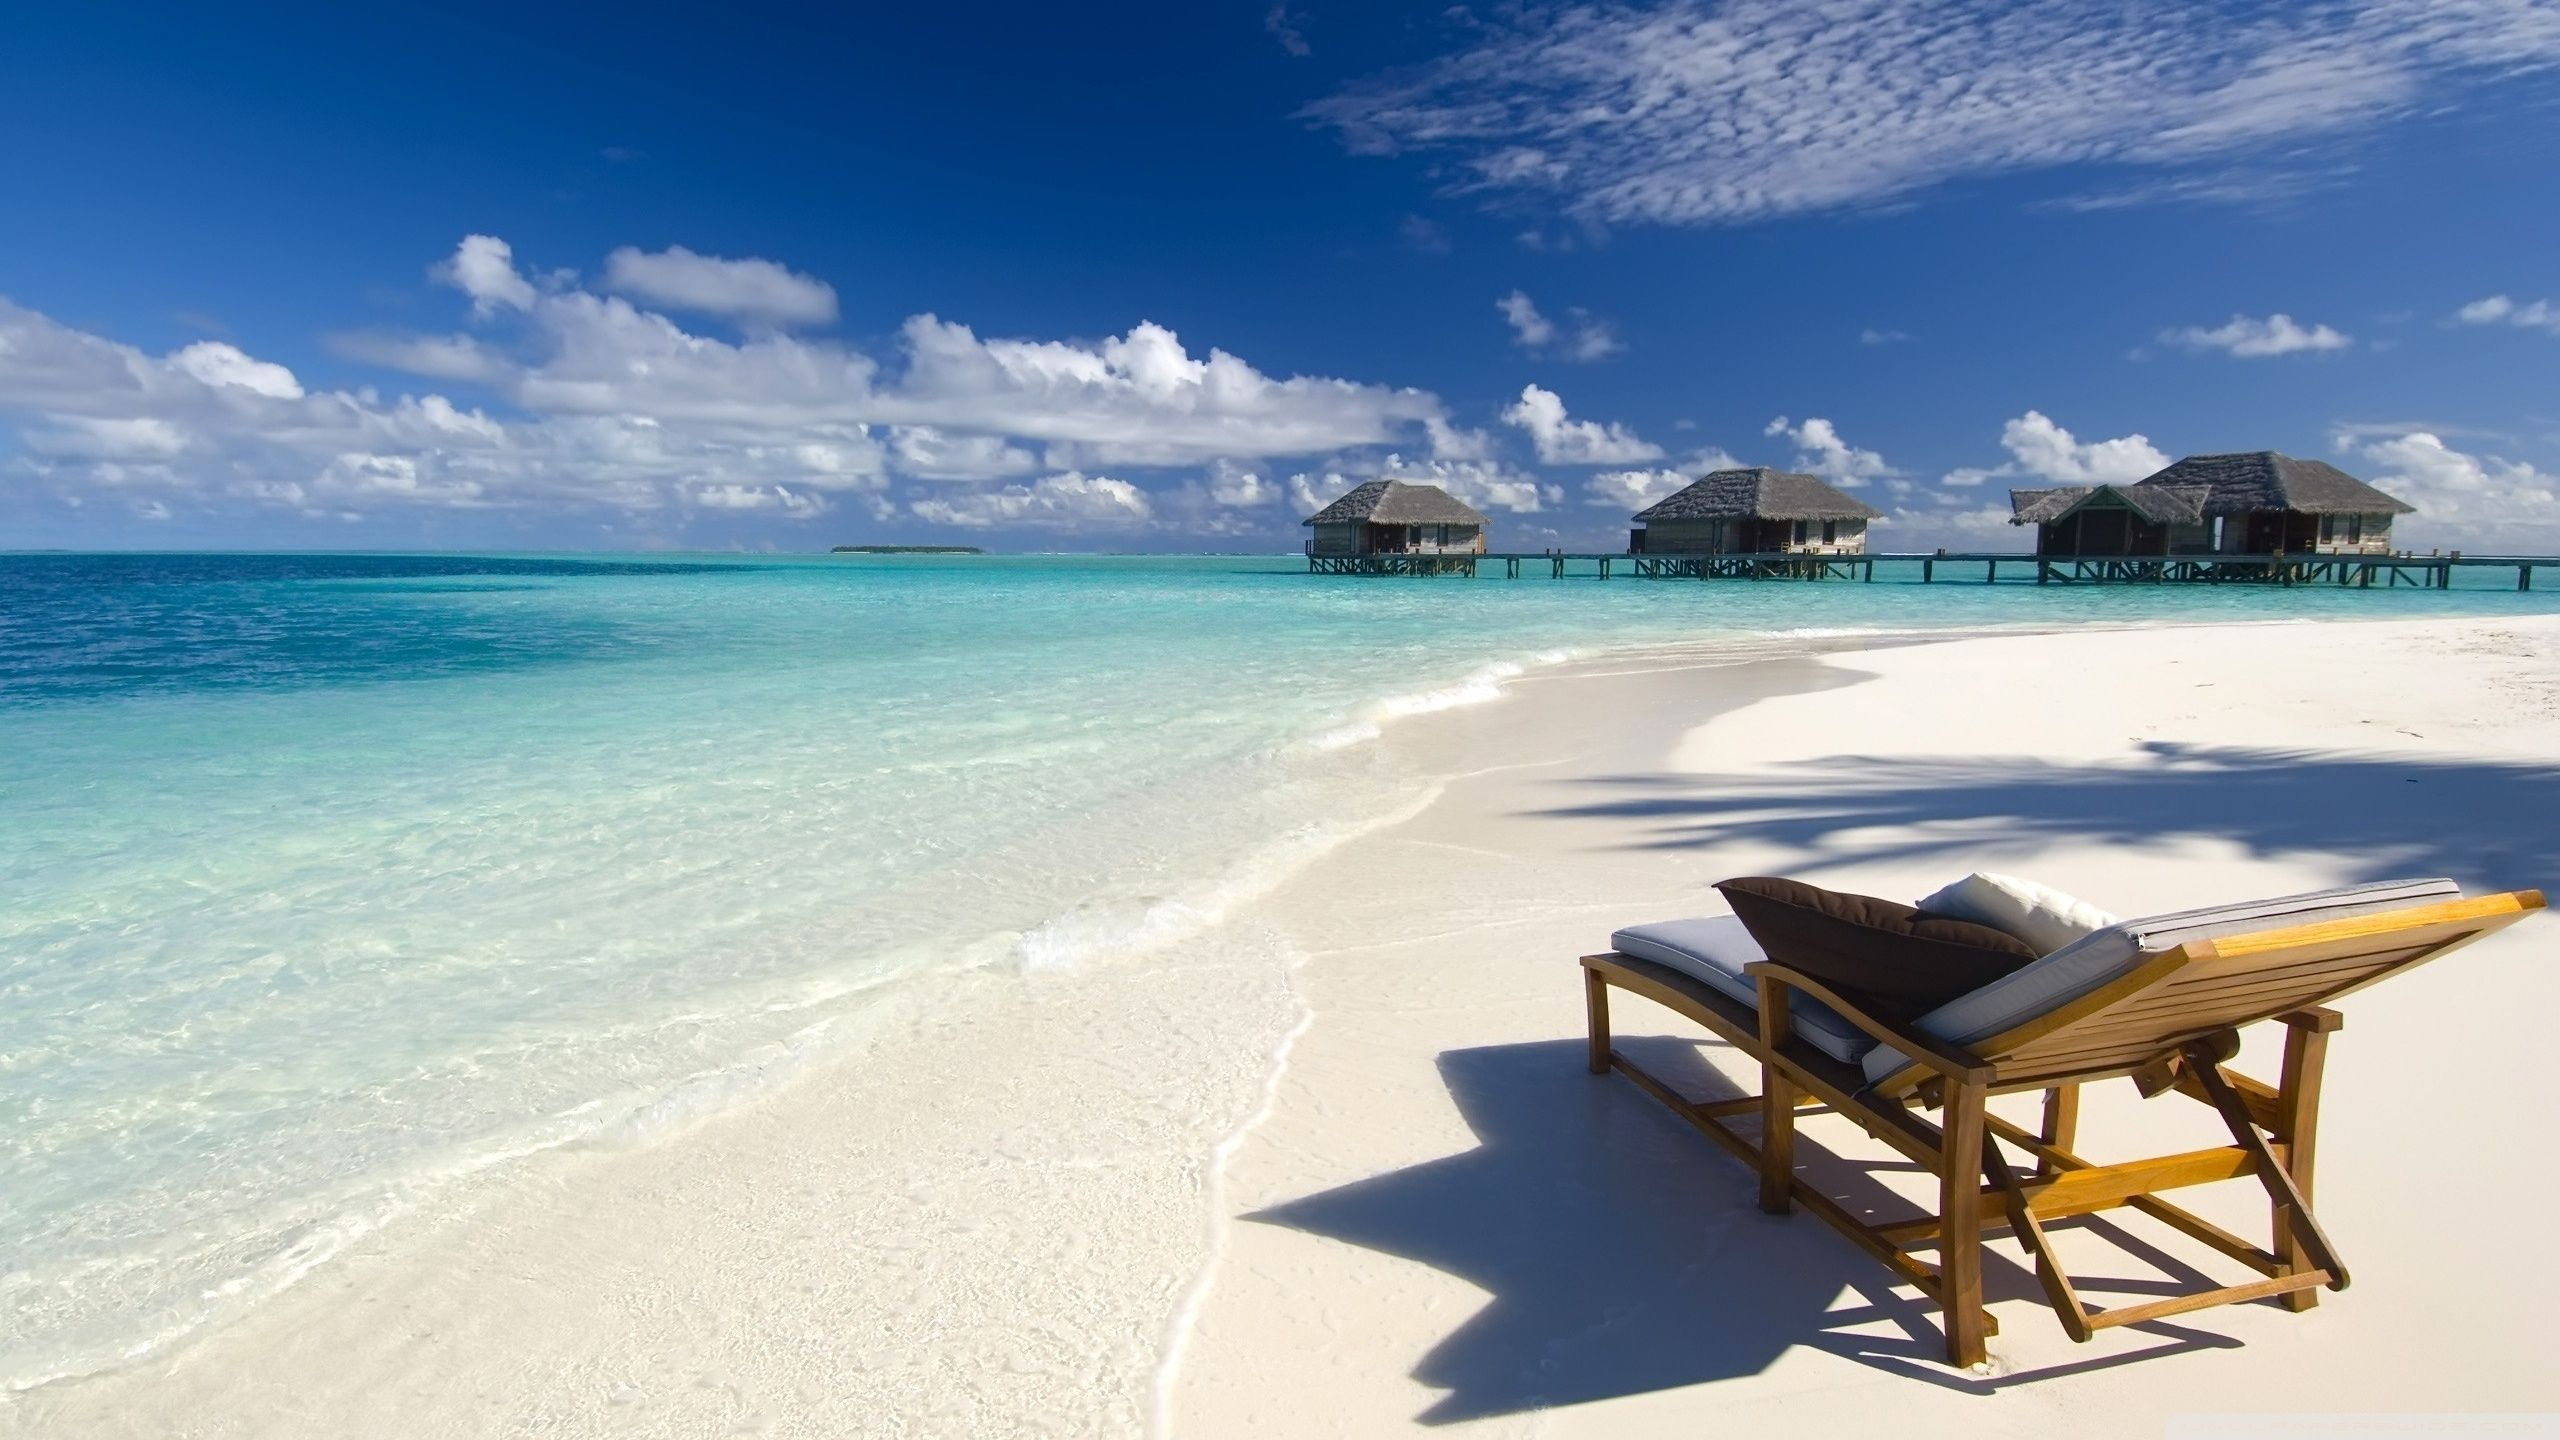 Vacation Wallpapers   Top Vacation Backgrounds   WallpaperAccess 2560x1440